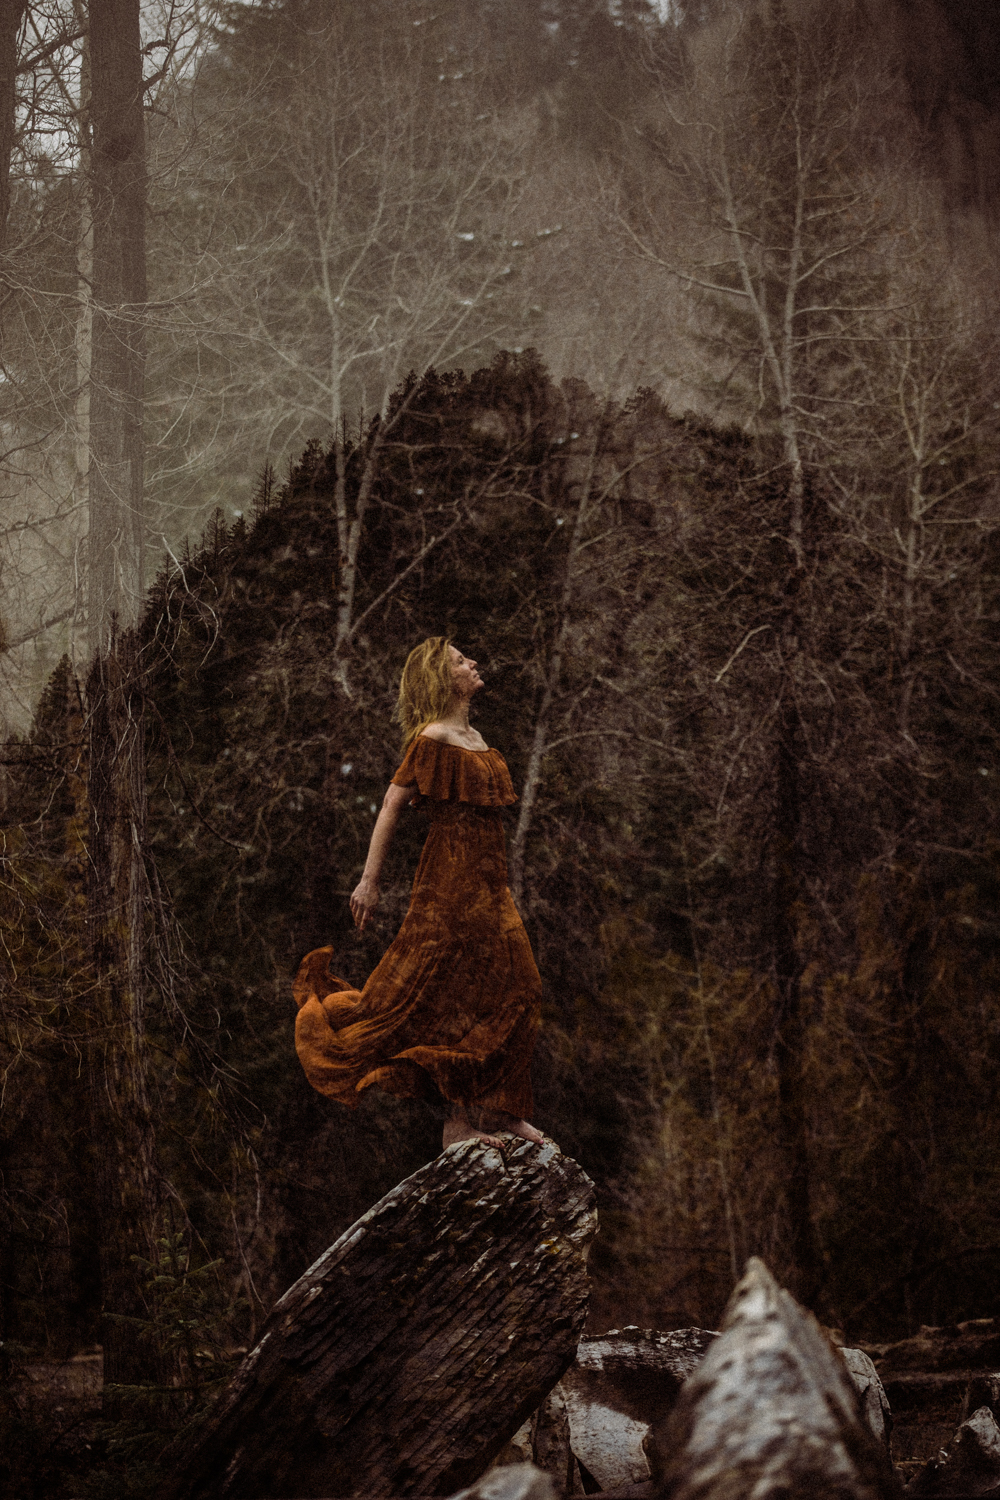 the woman in a russet gown  swept back by stilled winds  faces into yesterday's storm  Jennifer Kapala